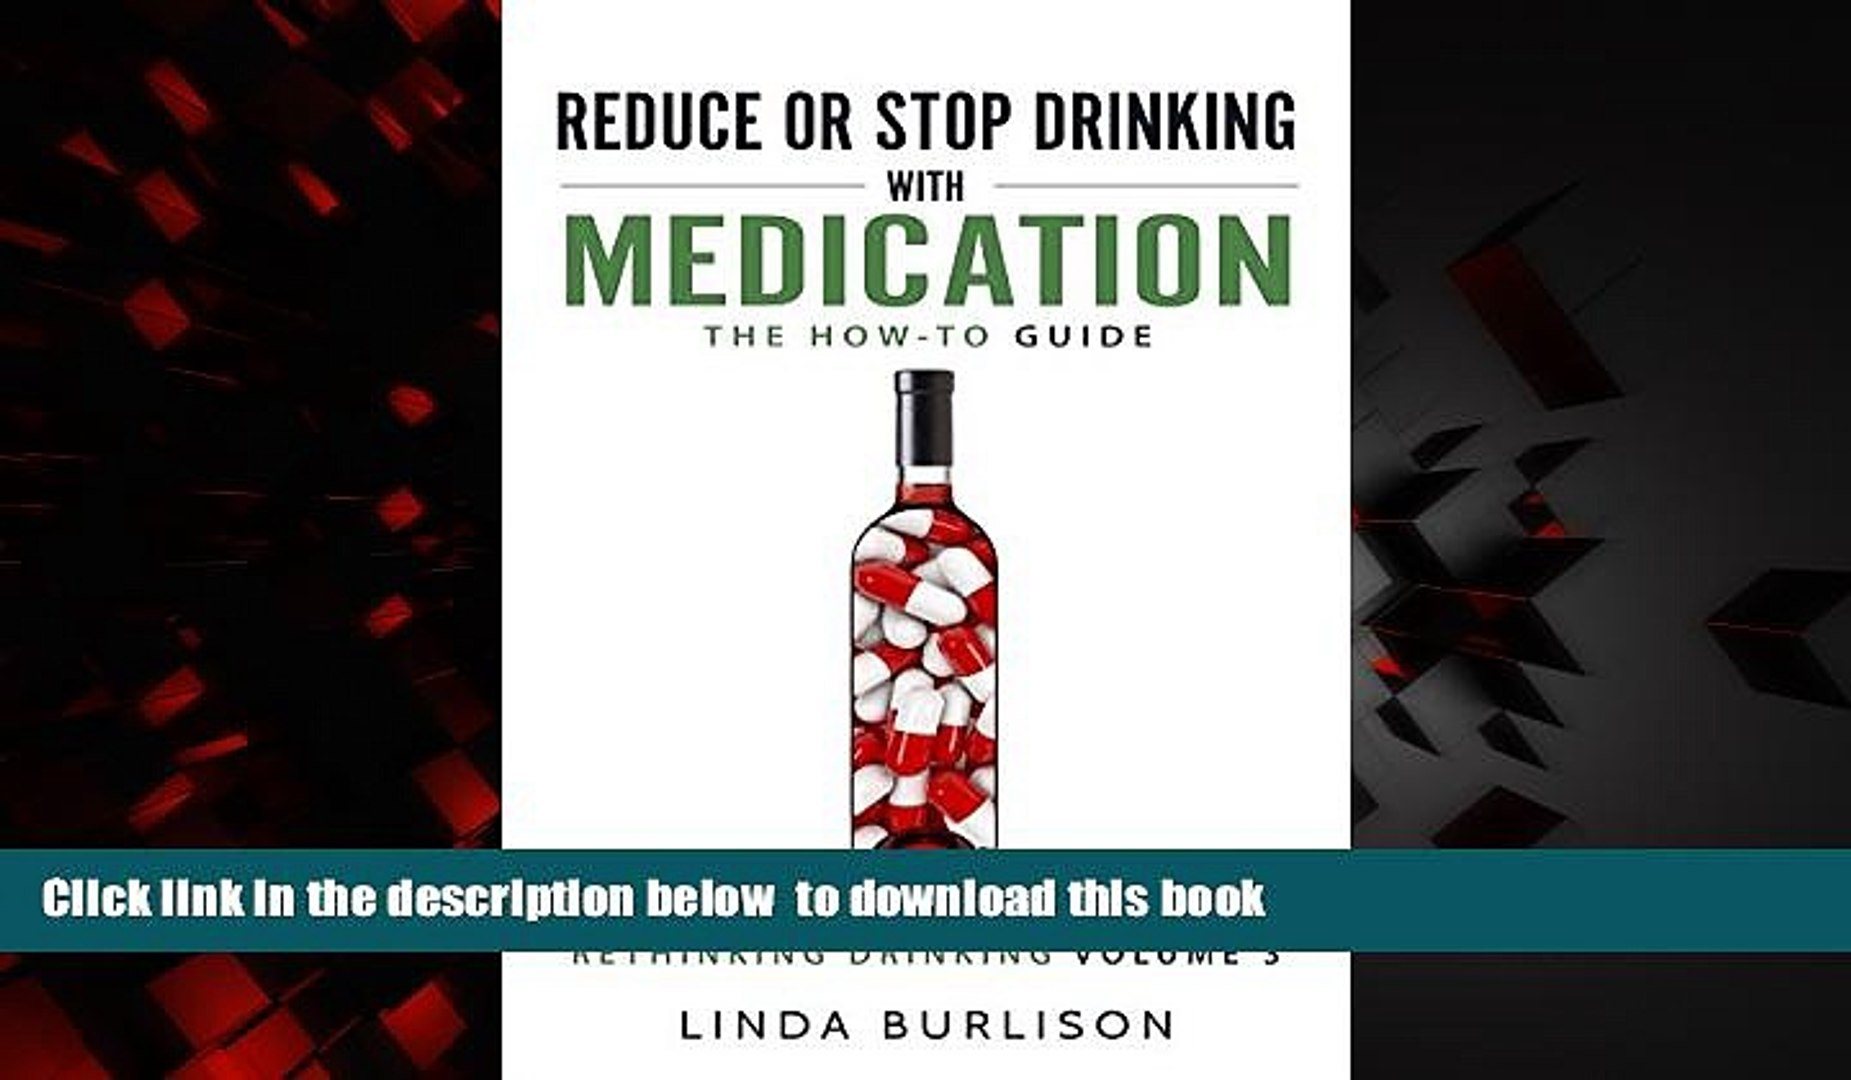 liberty book  Reduce or Stop Drinking with Medication: The How-To Guide (Rethinking Drinking Book